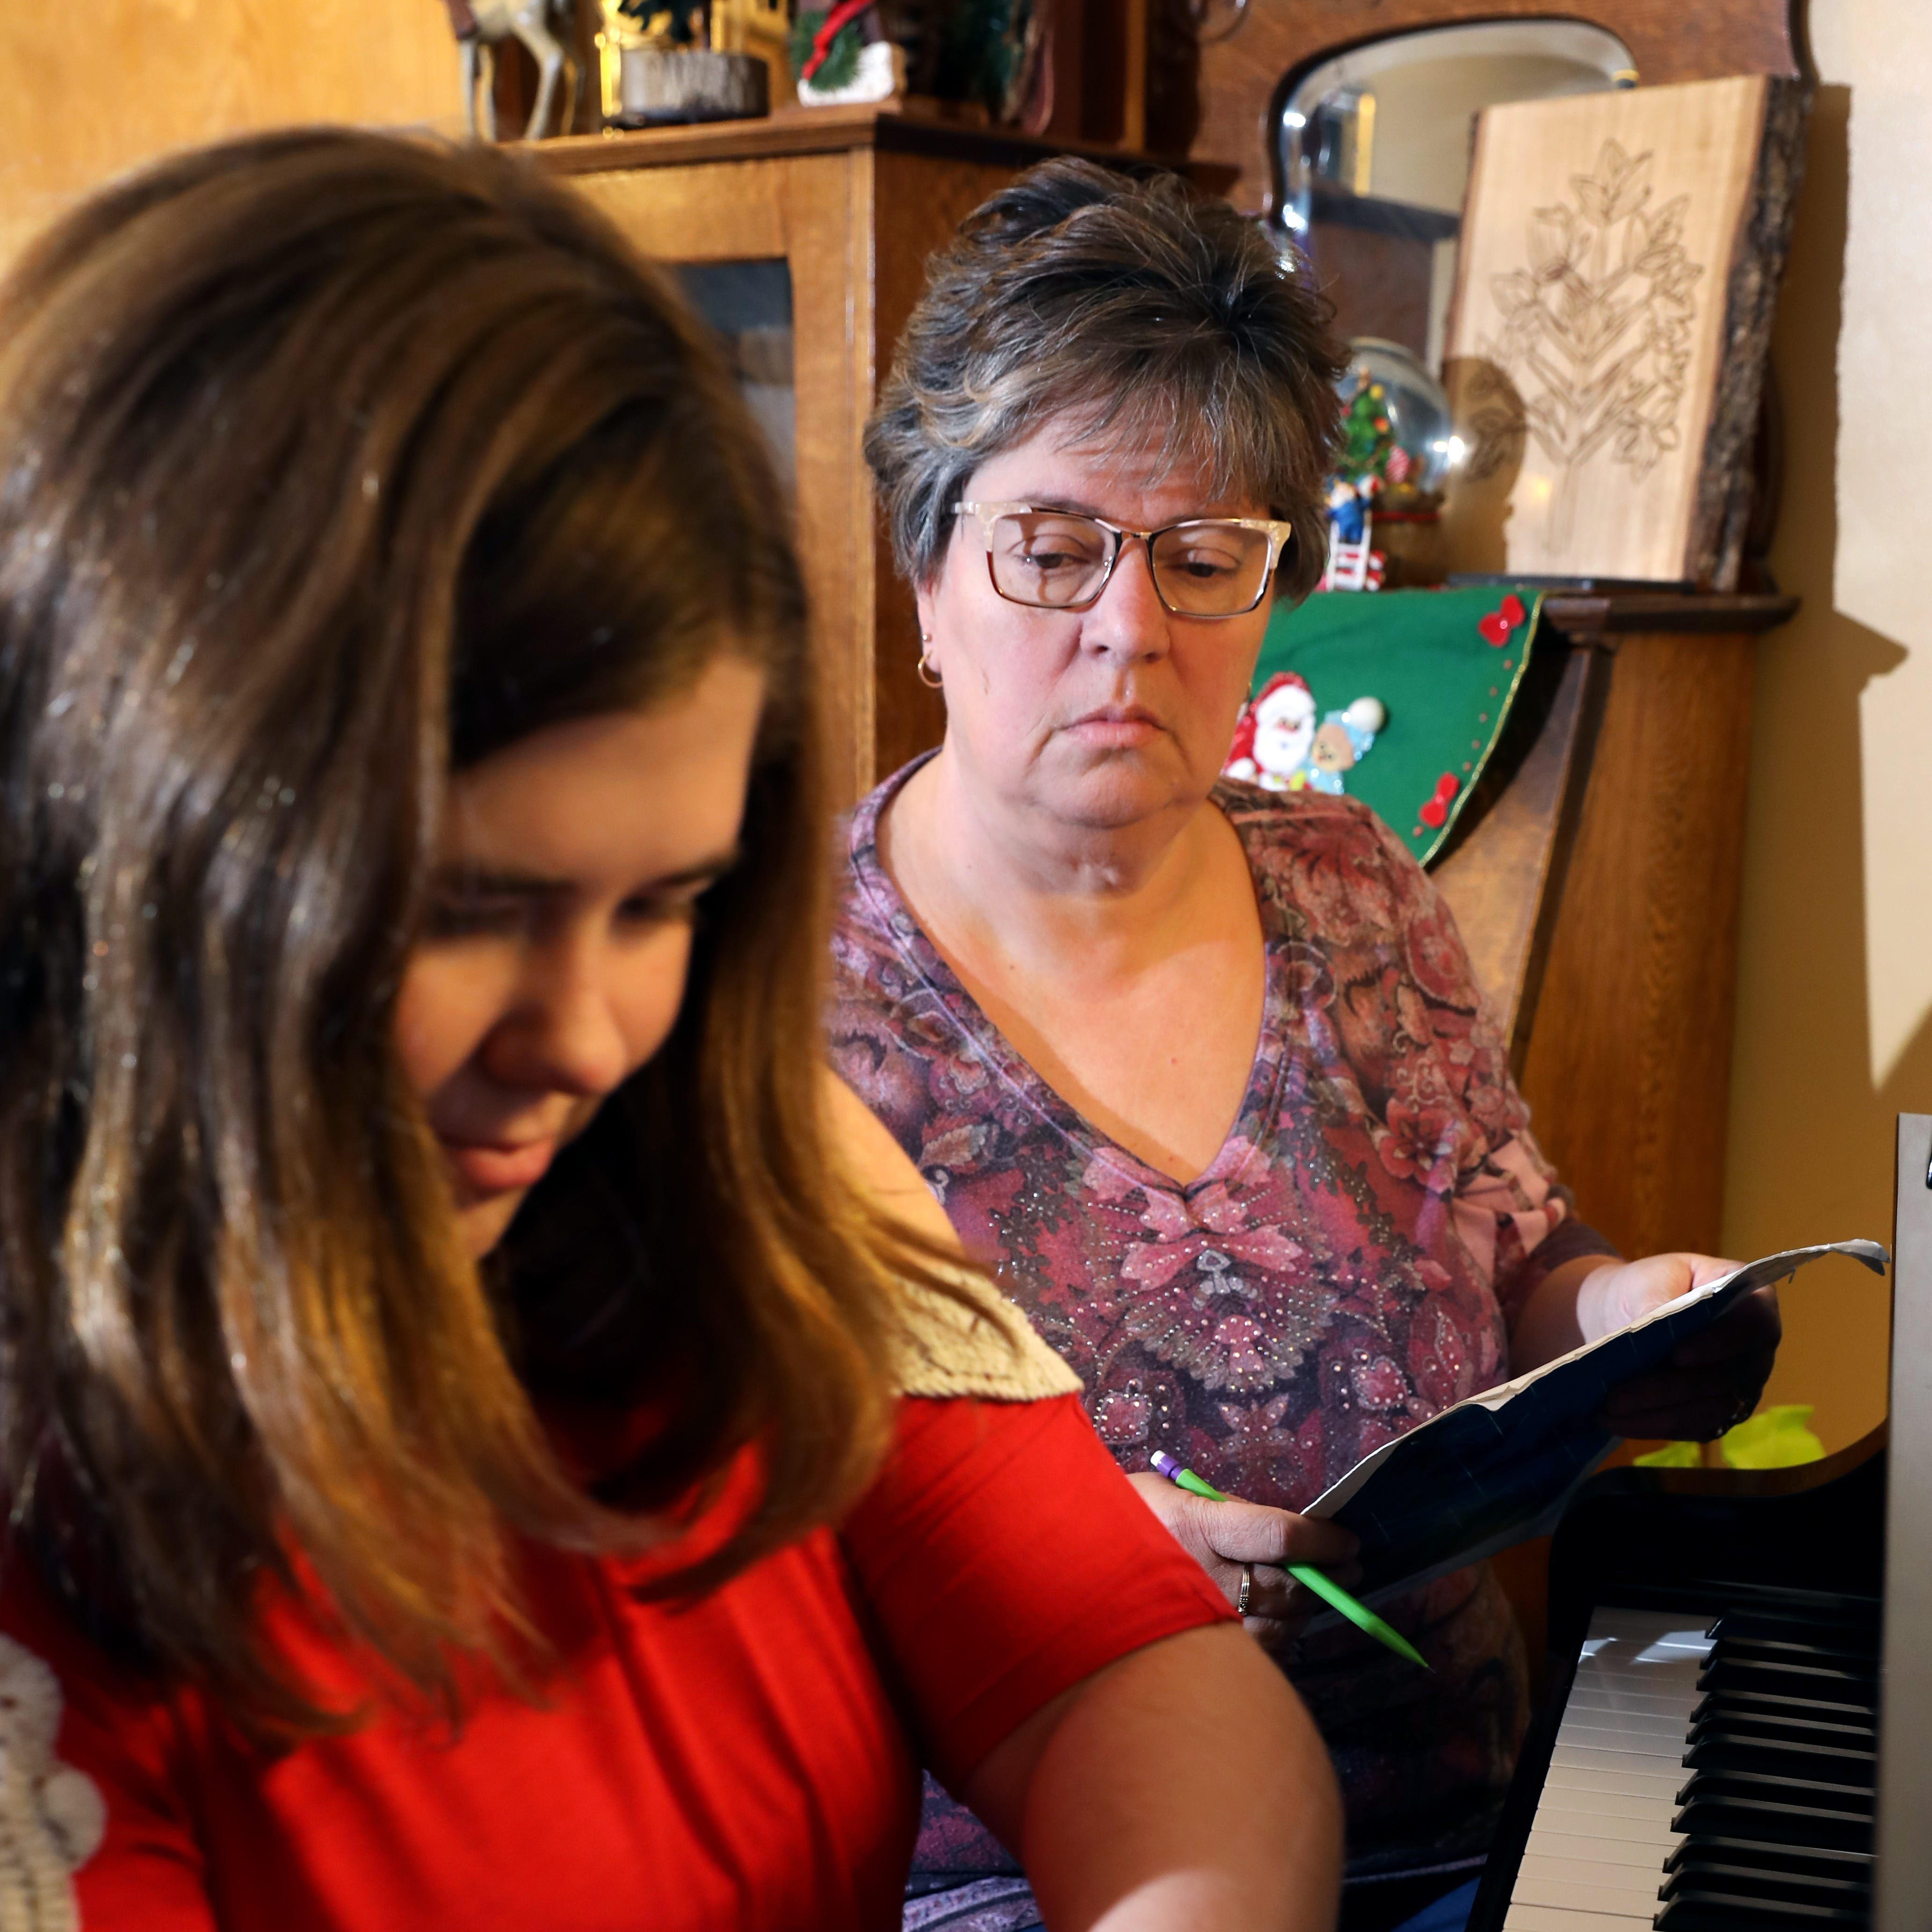 Calling leads to a career for piano instructor